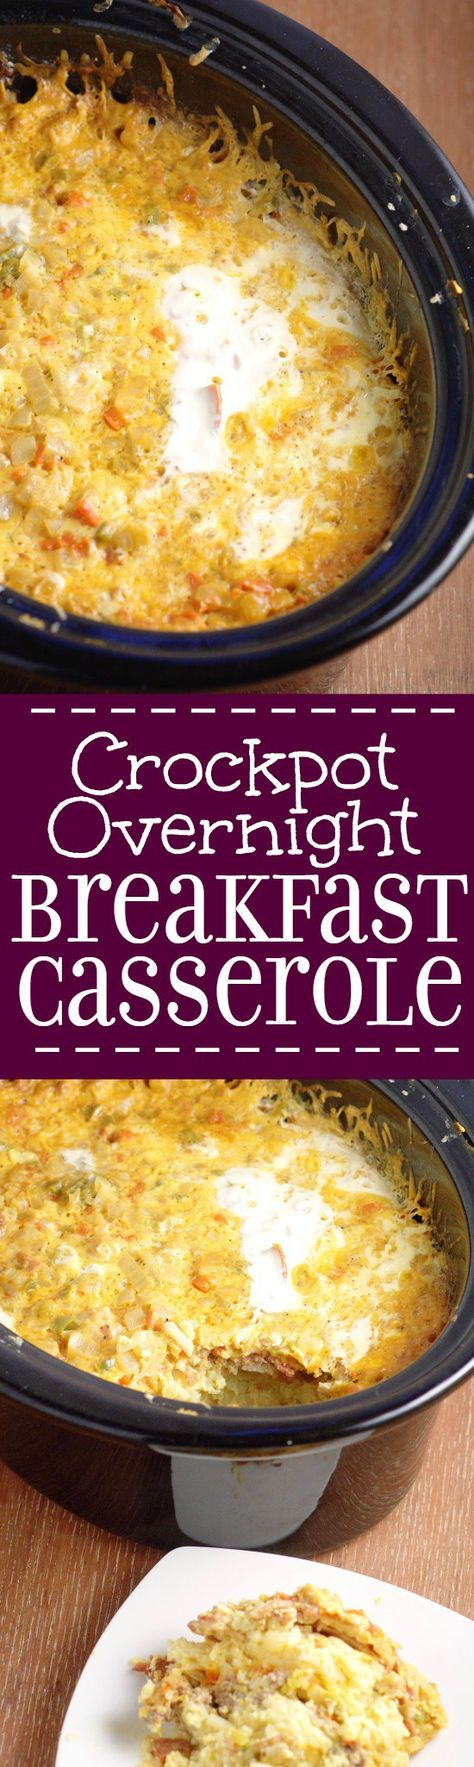 Crockpot Overnight Breakfast Casserole recipe with eggs, sausage, bacon, hash browns, and cheese.